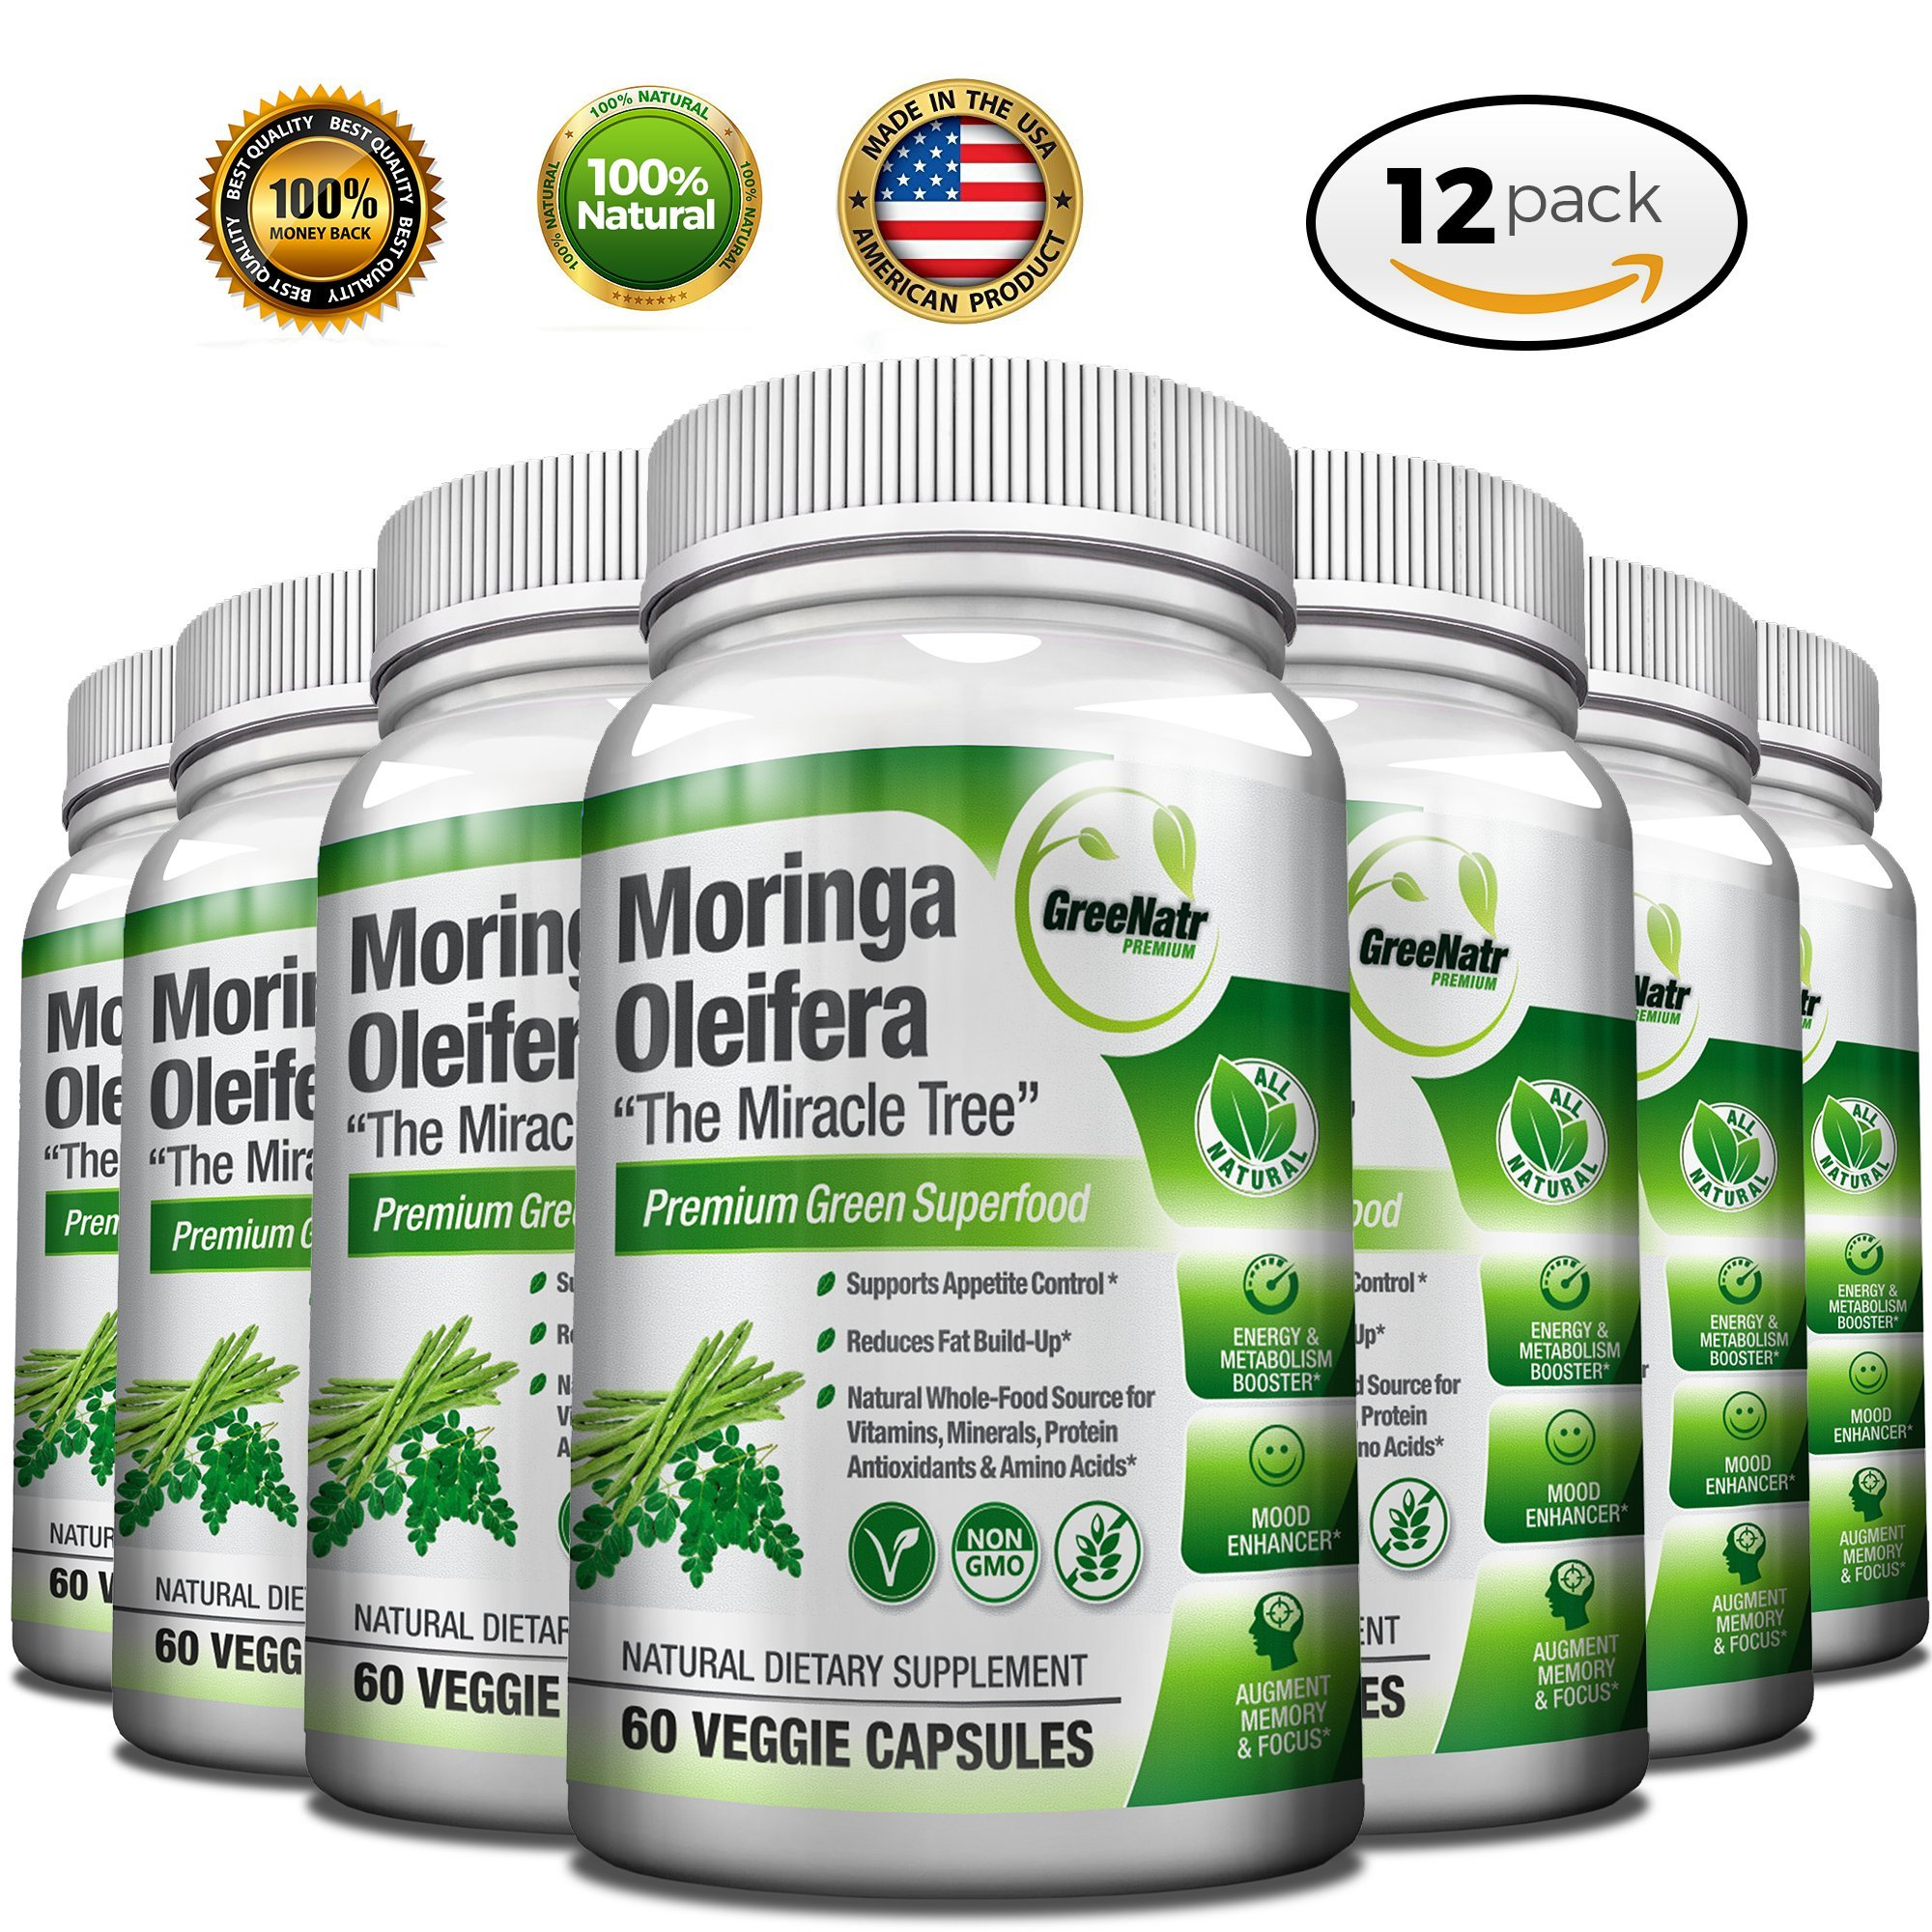 Pure Moringa Oleifera Leaf Extract Capsules * 100% NATURAL Premium Green Superfood * Natural Weight Loss Supplement + Energy & Metabolism Booster + Mood, Memory & Focus Enhancer (12 Pack)